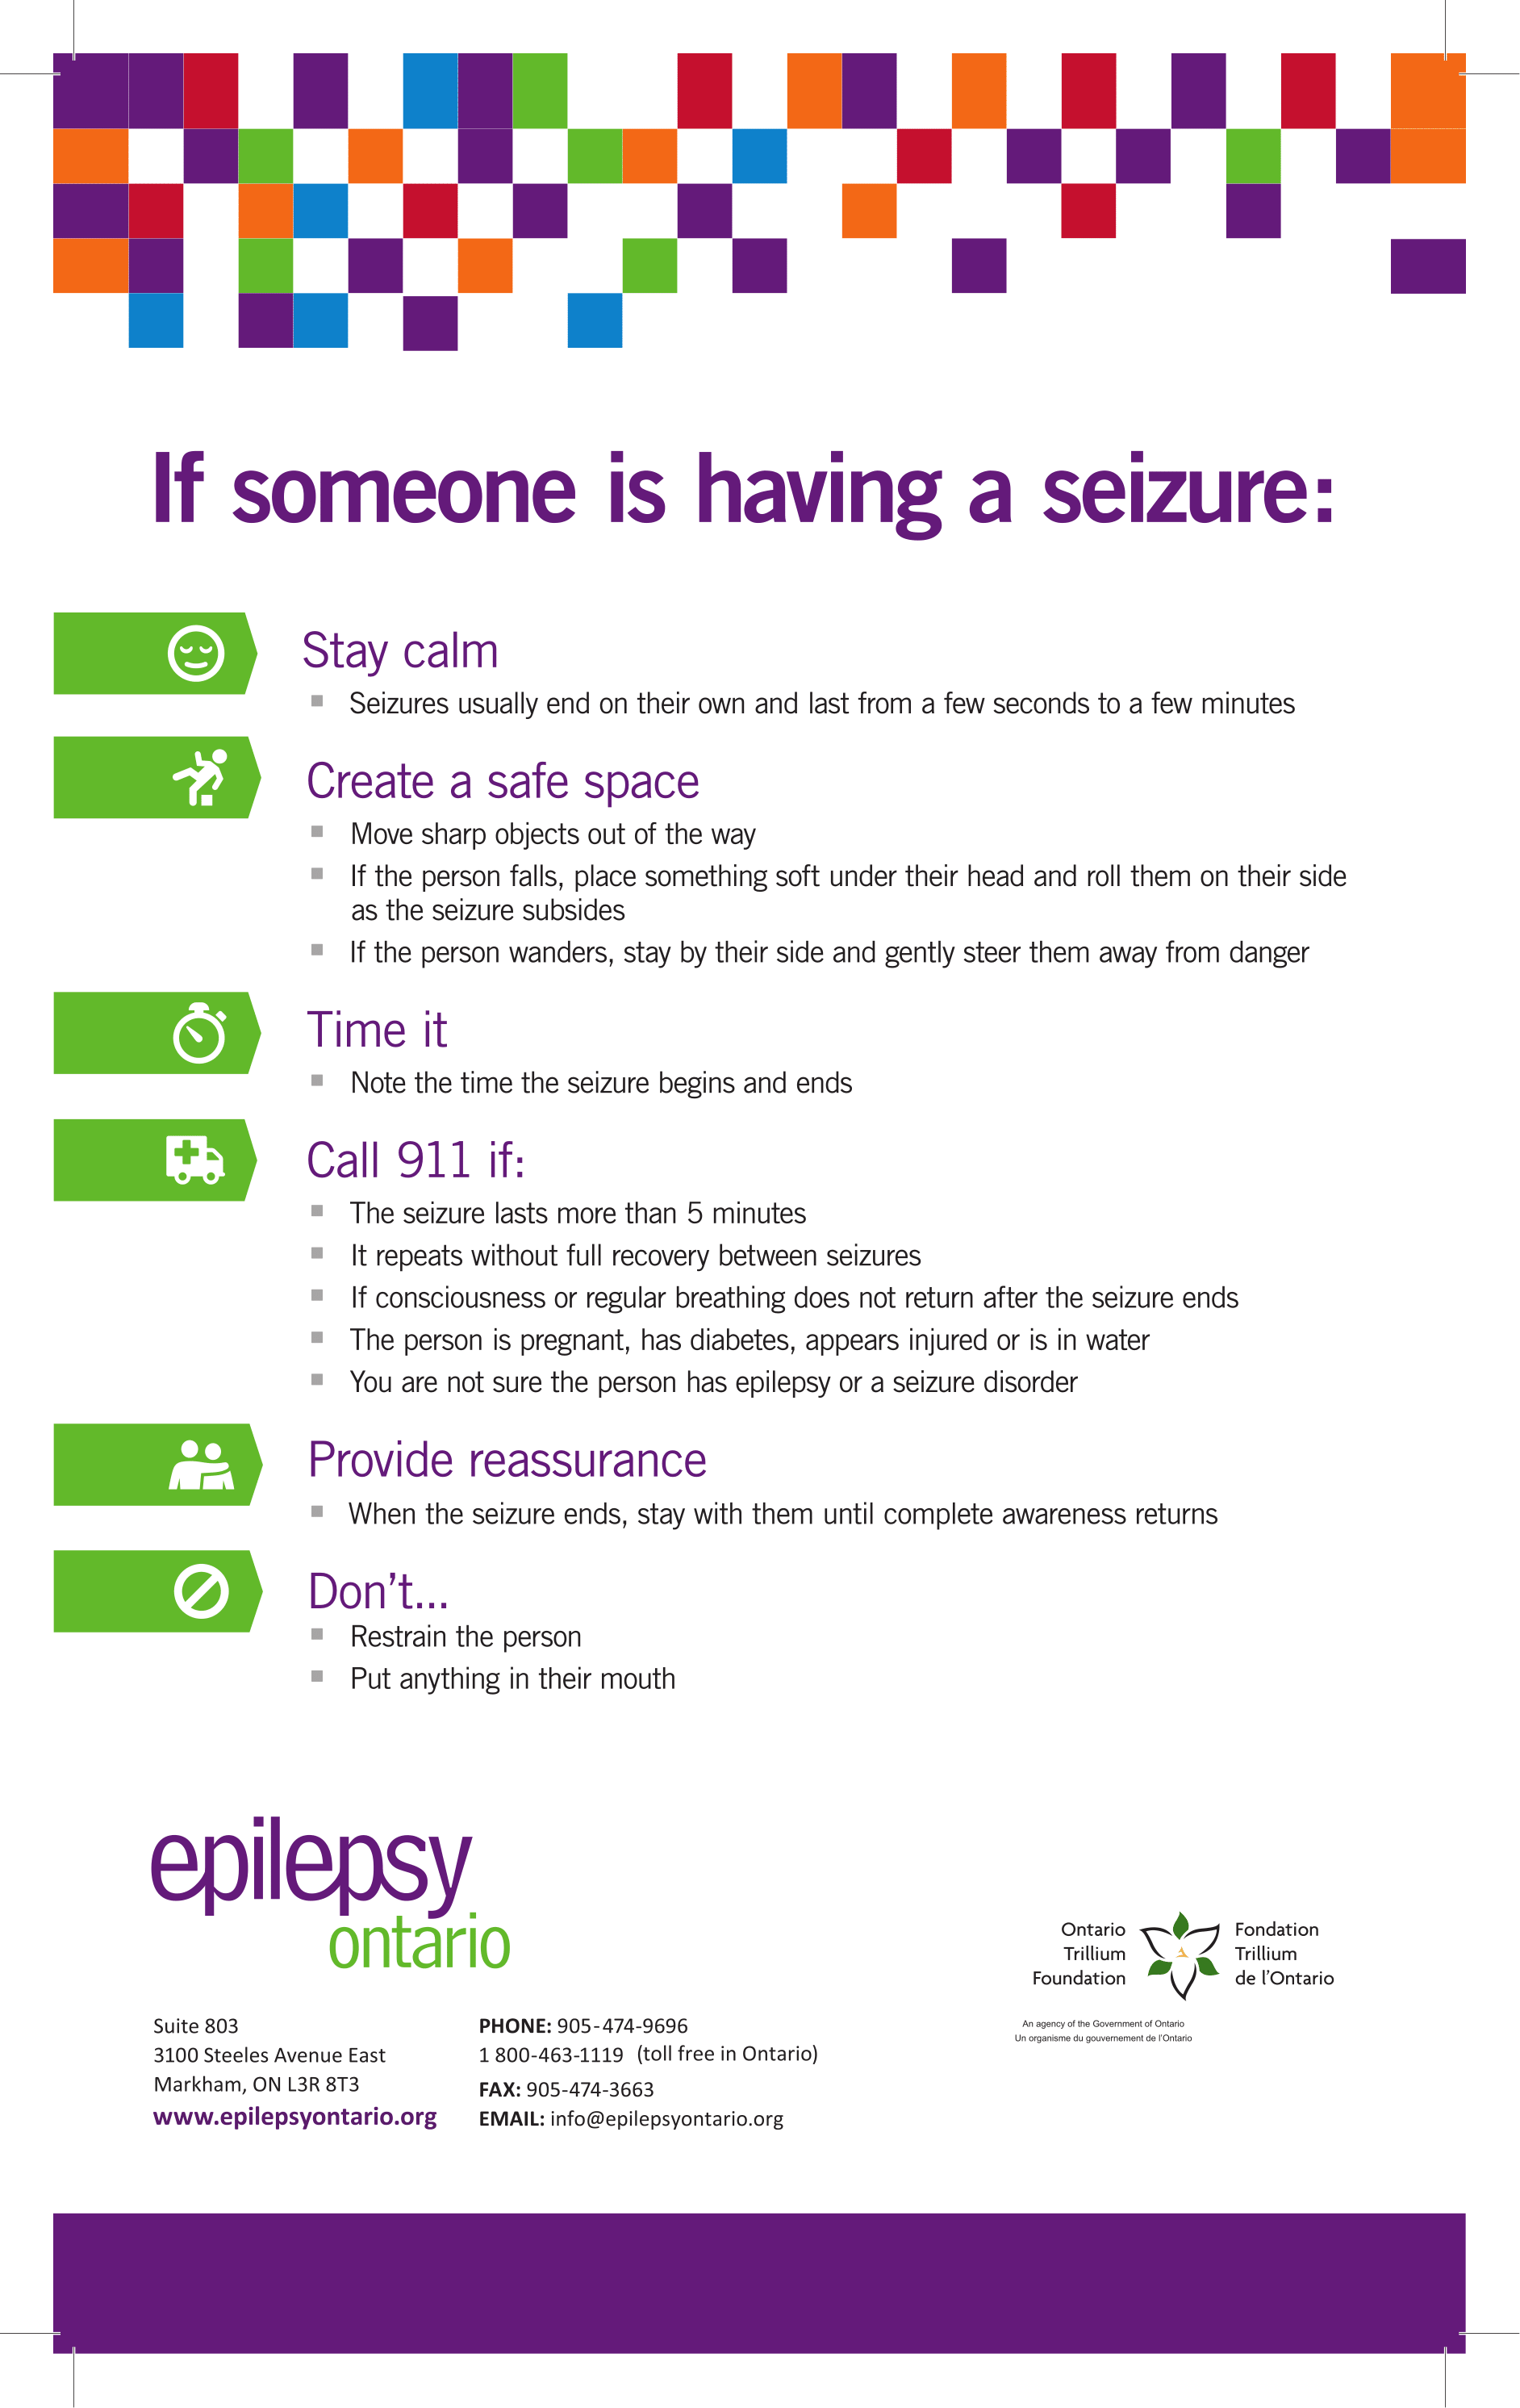 Poster describing epilepsy first aid.